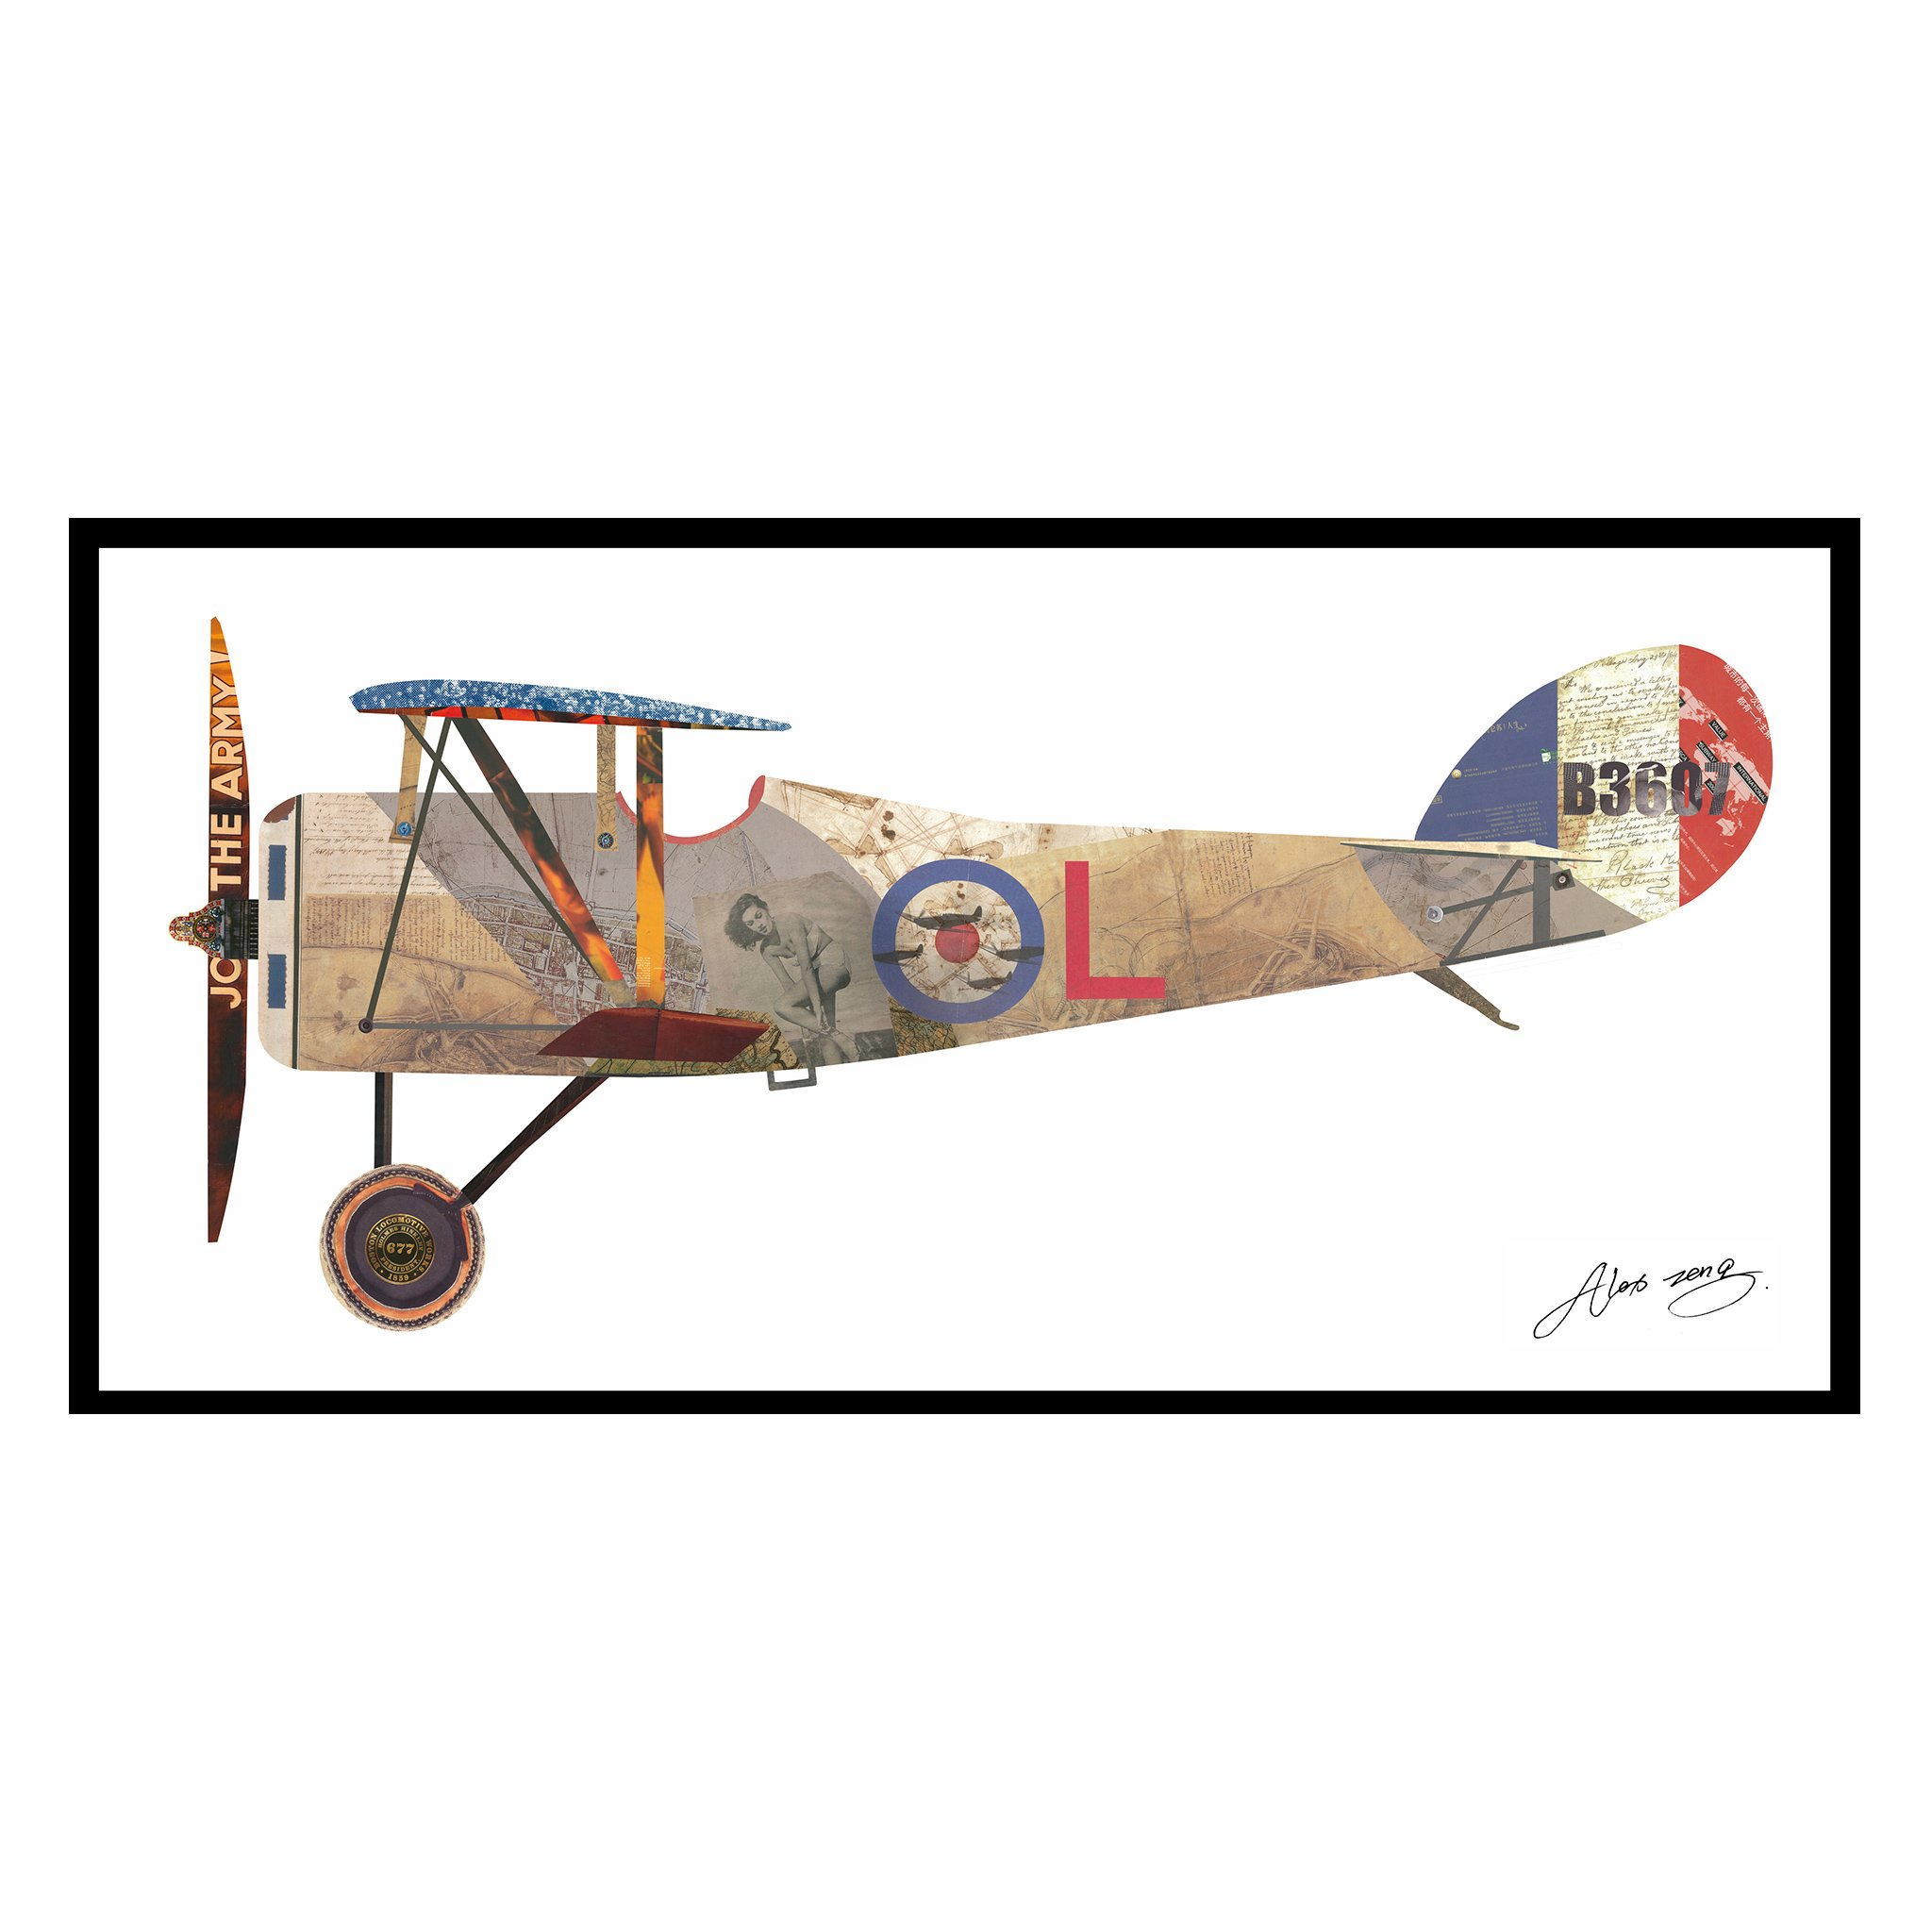 Empire Art Direct ''Antique Biplane #1'' Original Dimensional Collage Hand Signed by Alex Zeng Framed Graphic Wall Art (White Background)